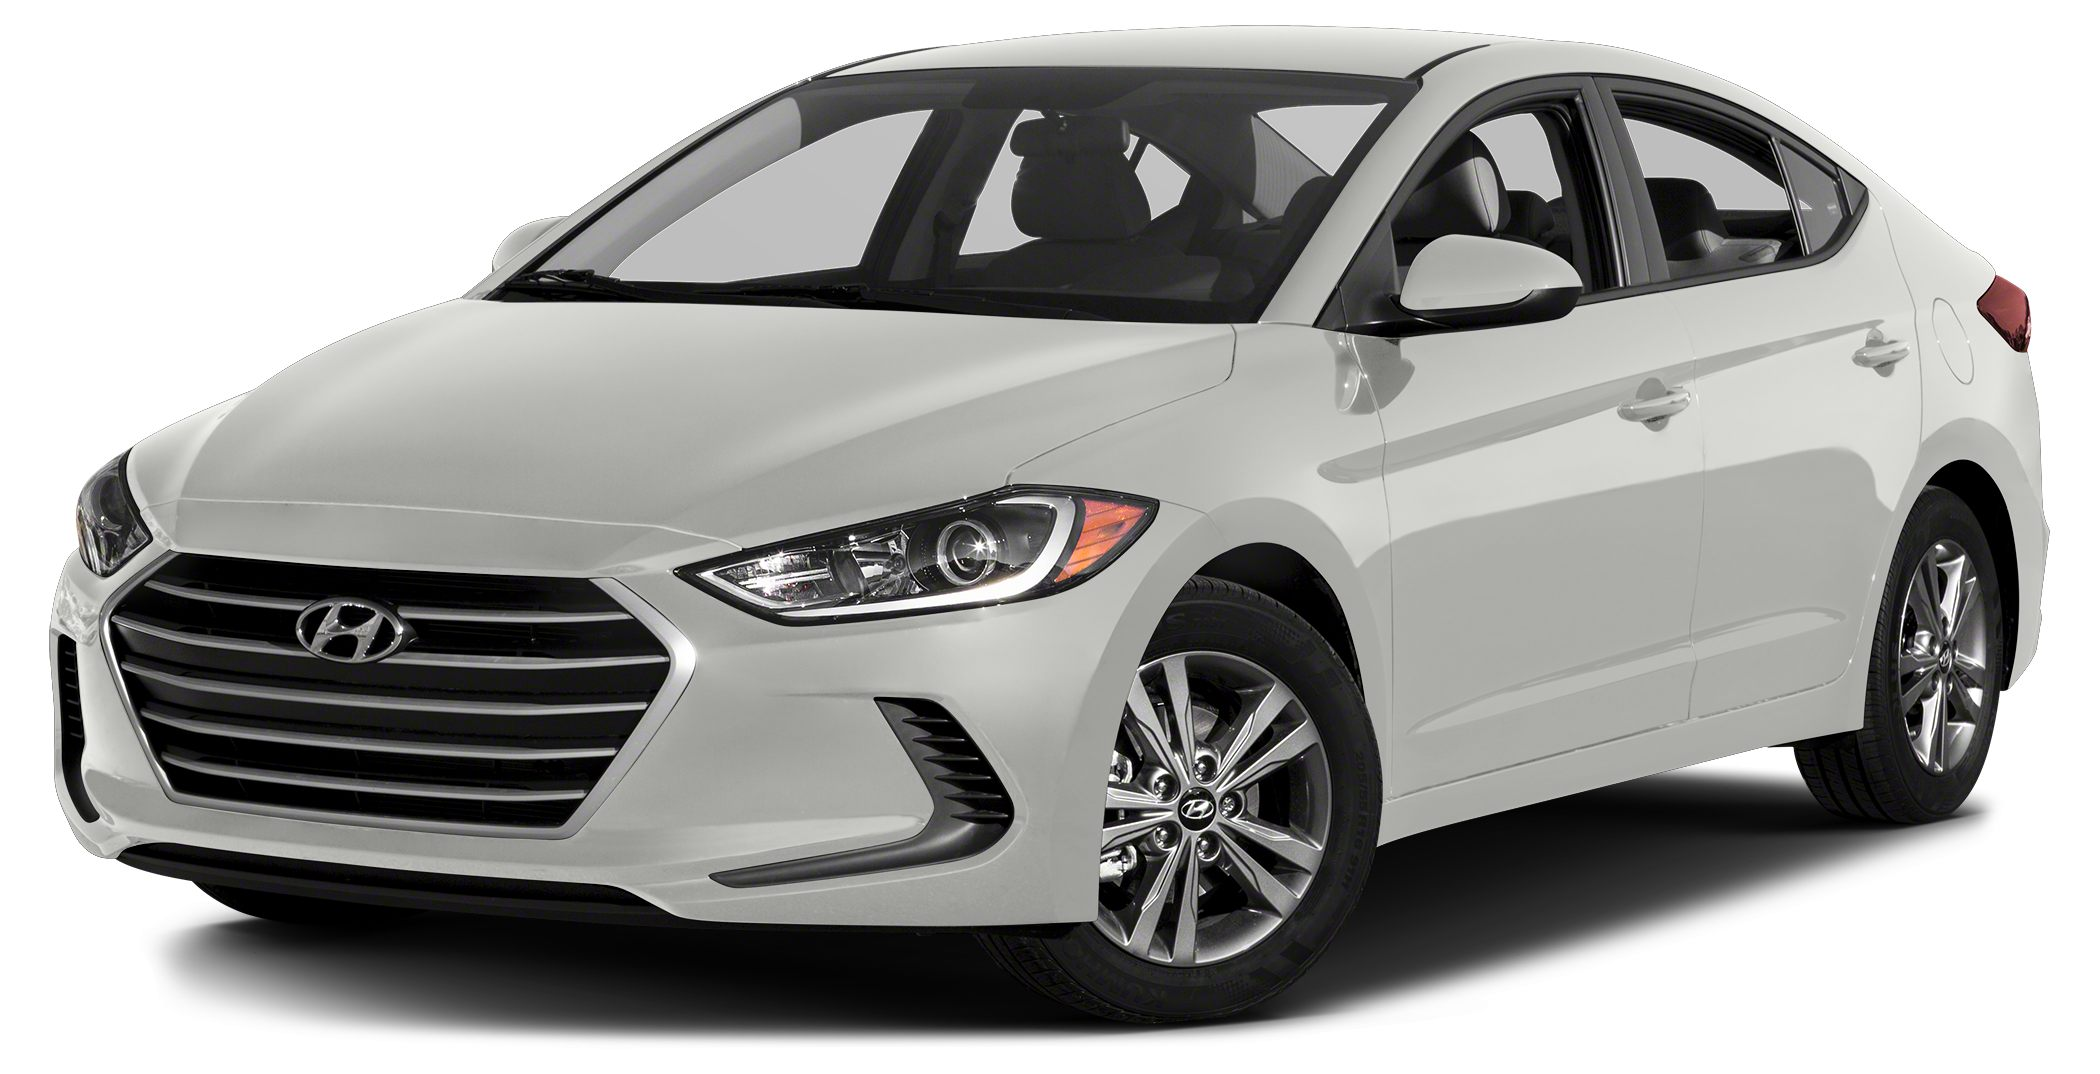 2018 Hyundai Elantra Value Edition Bluetooth Hands-free Phone System Power Sunroof  Blind Spot